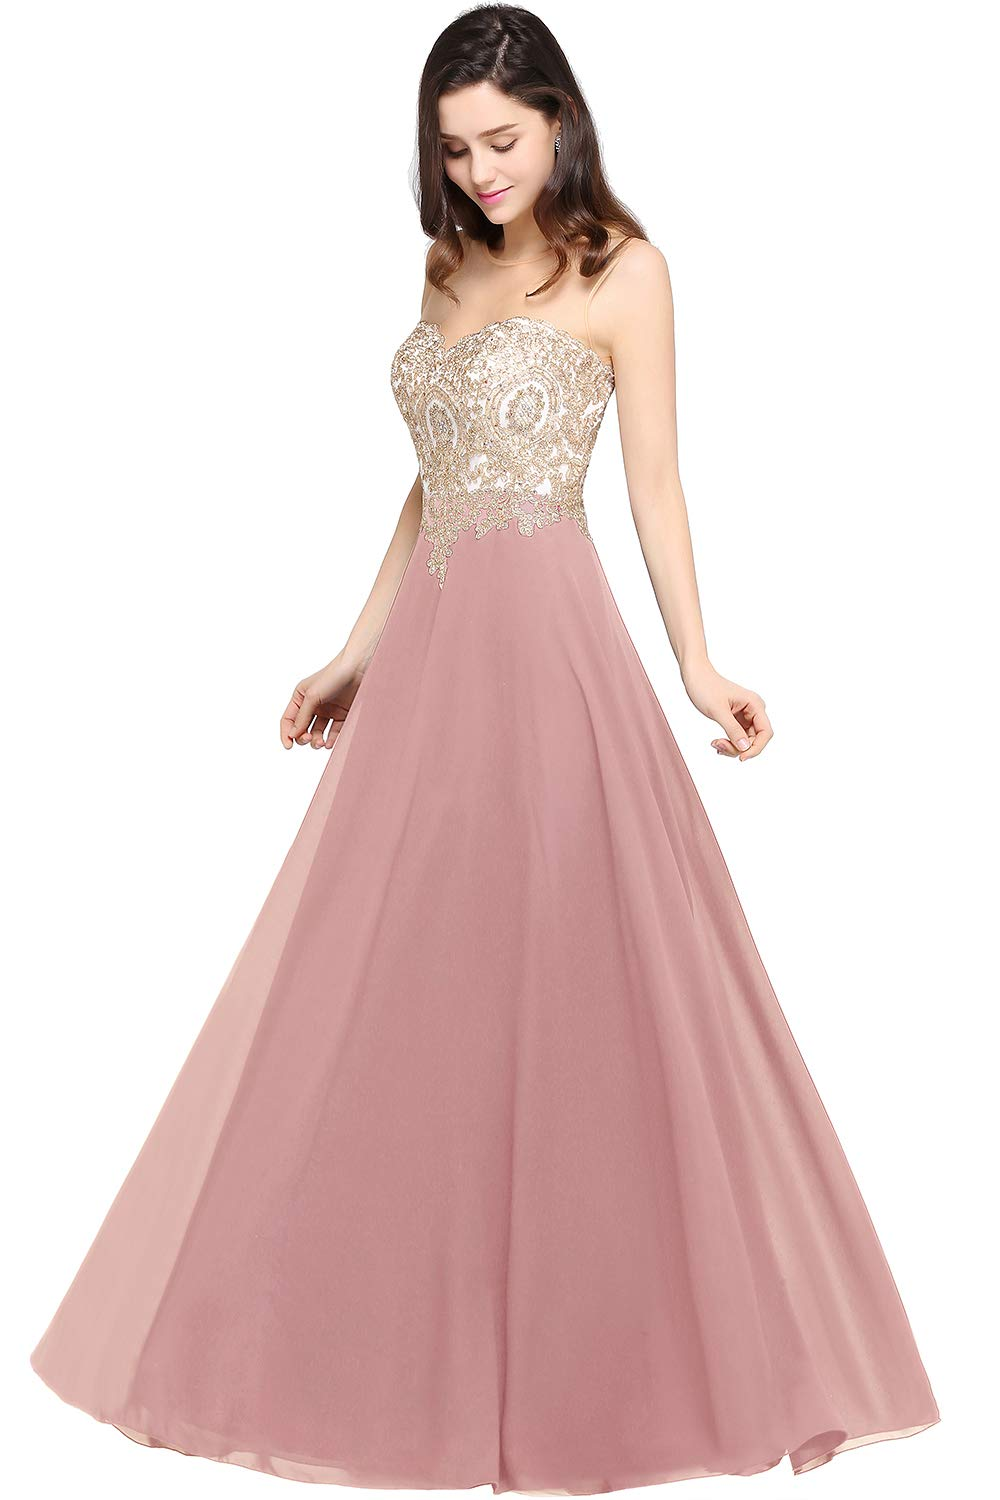 Prom Dresses - Babyonline Women's Double V-Neck Tulle Appliques Long Evening Cocktail Gowns